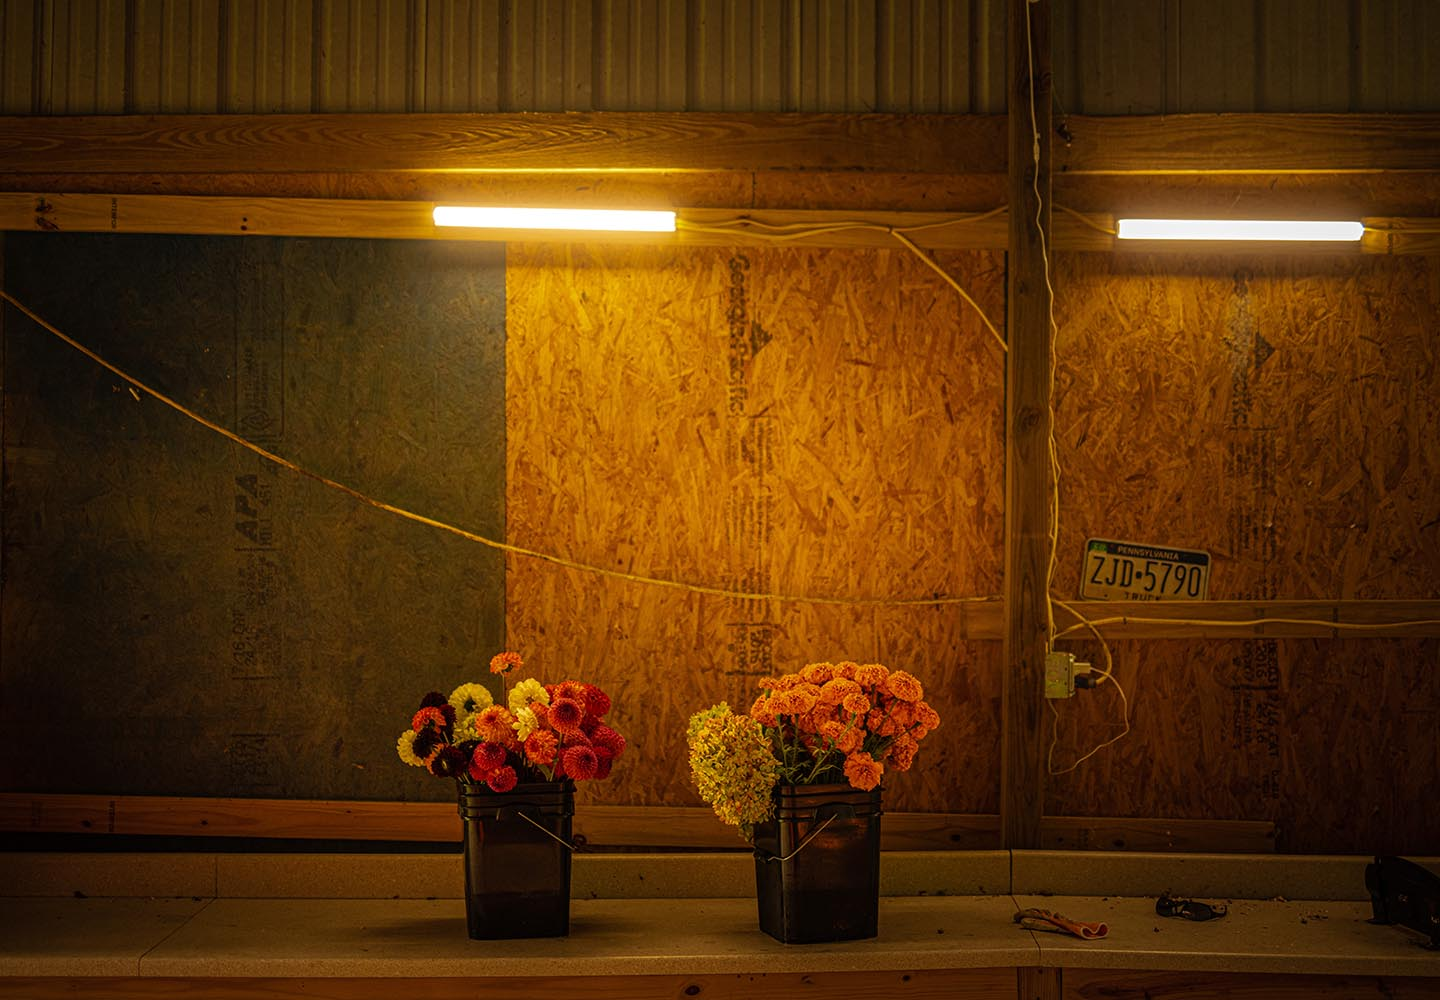 Jenn McAtee's workbench with buckets of flowers